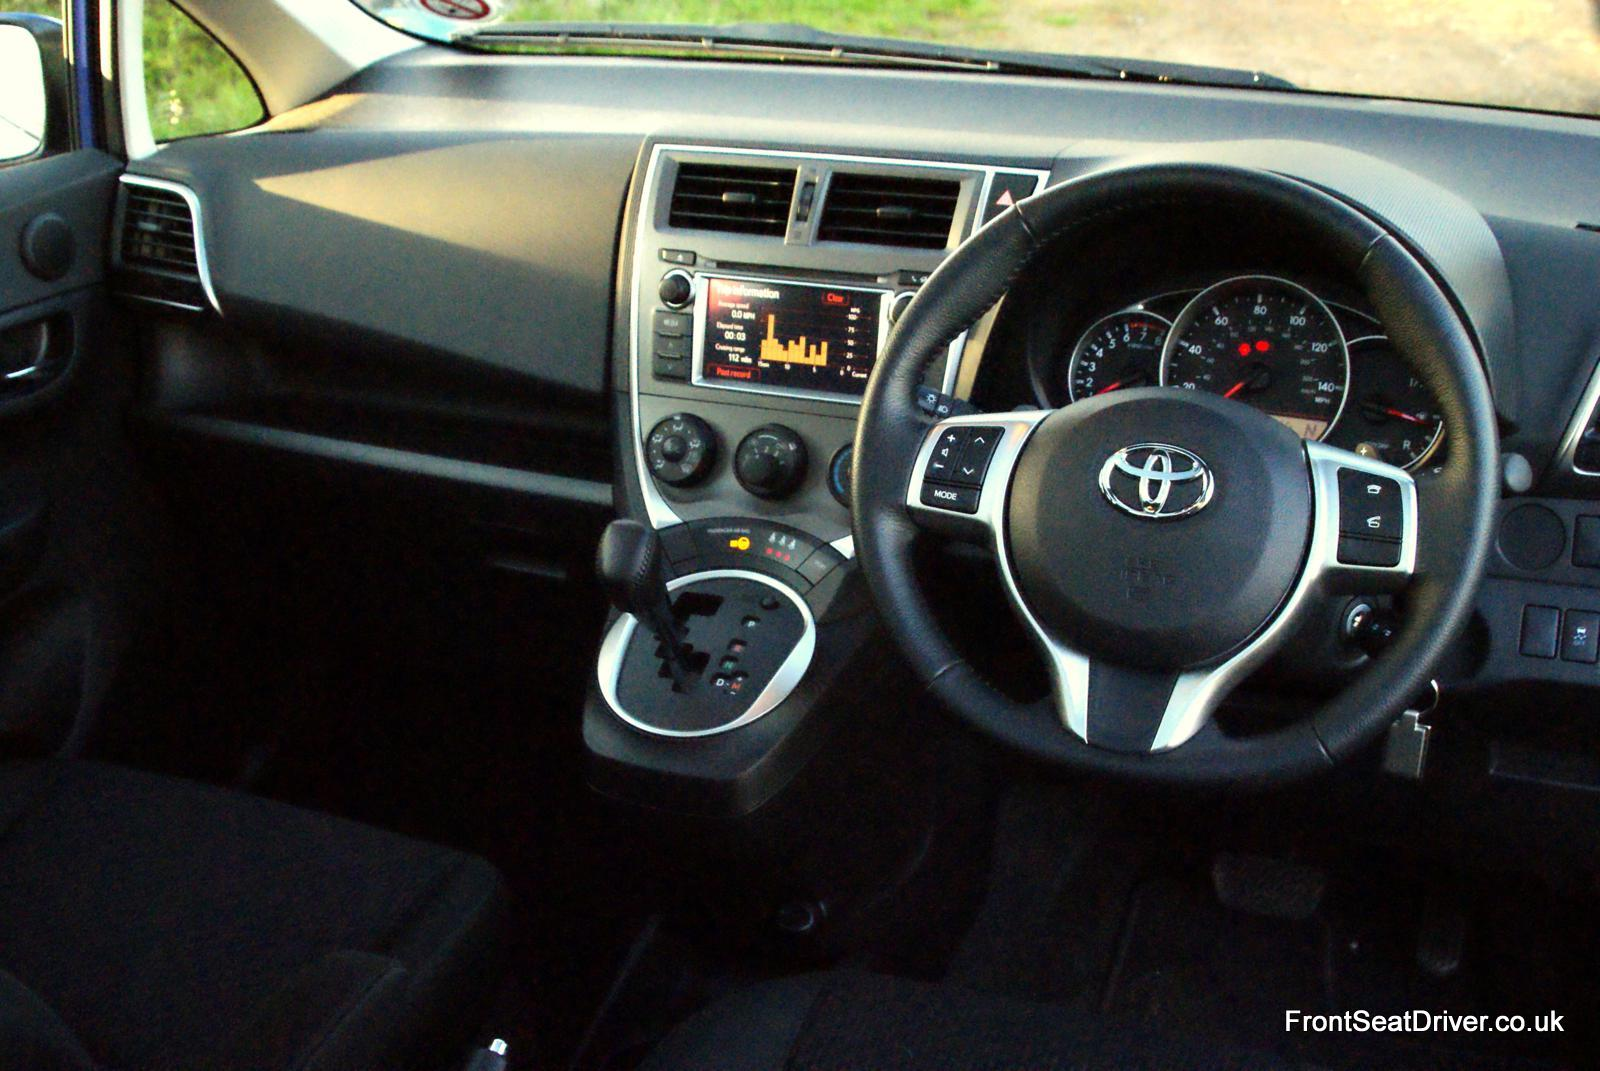 Toyota Verso S 2012 Interior Front Seat Driver